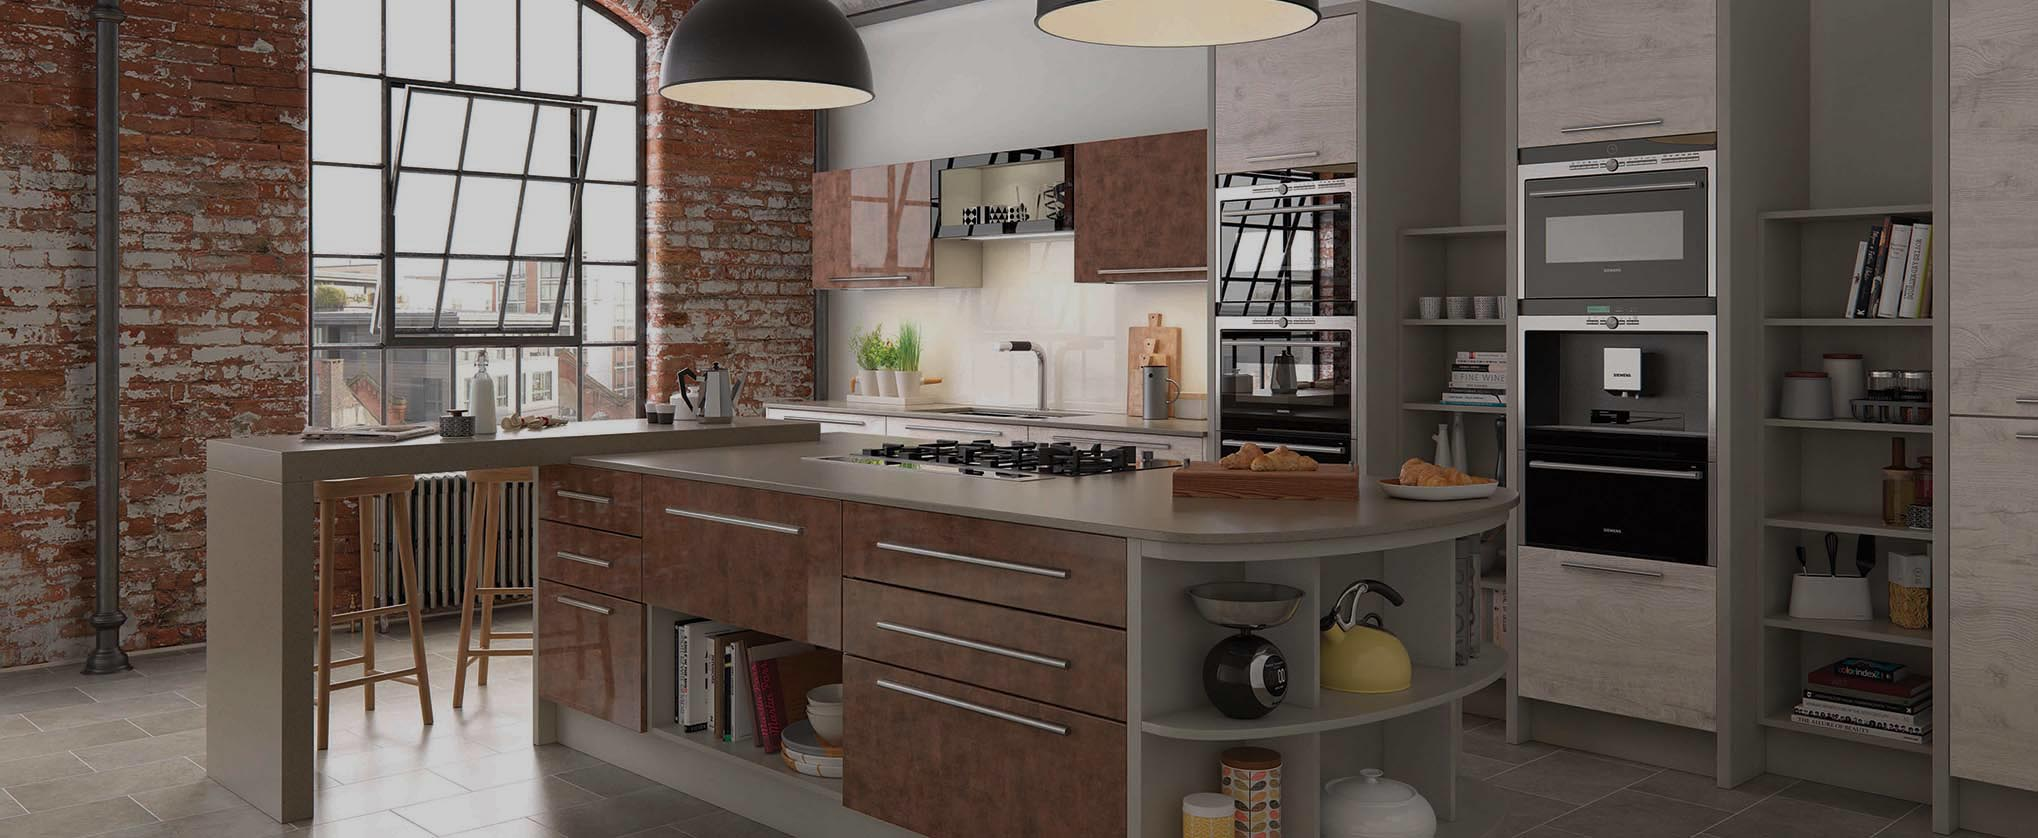 Cucina The Kitchen Company Fitted Kitchen And Fitted Bedrooms Dbk Designs Woodford Essex